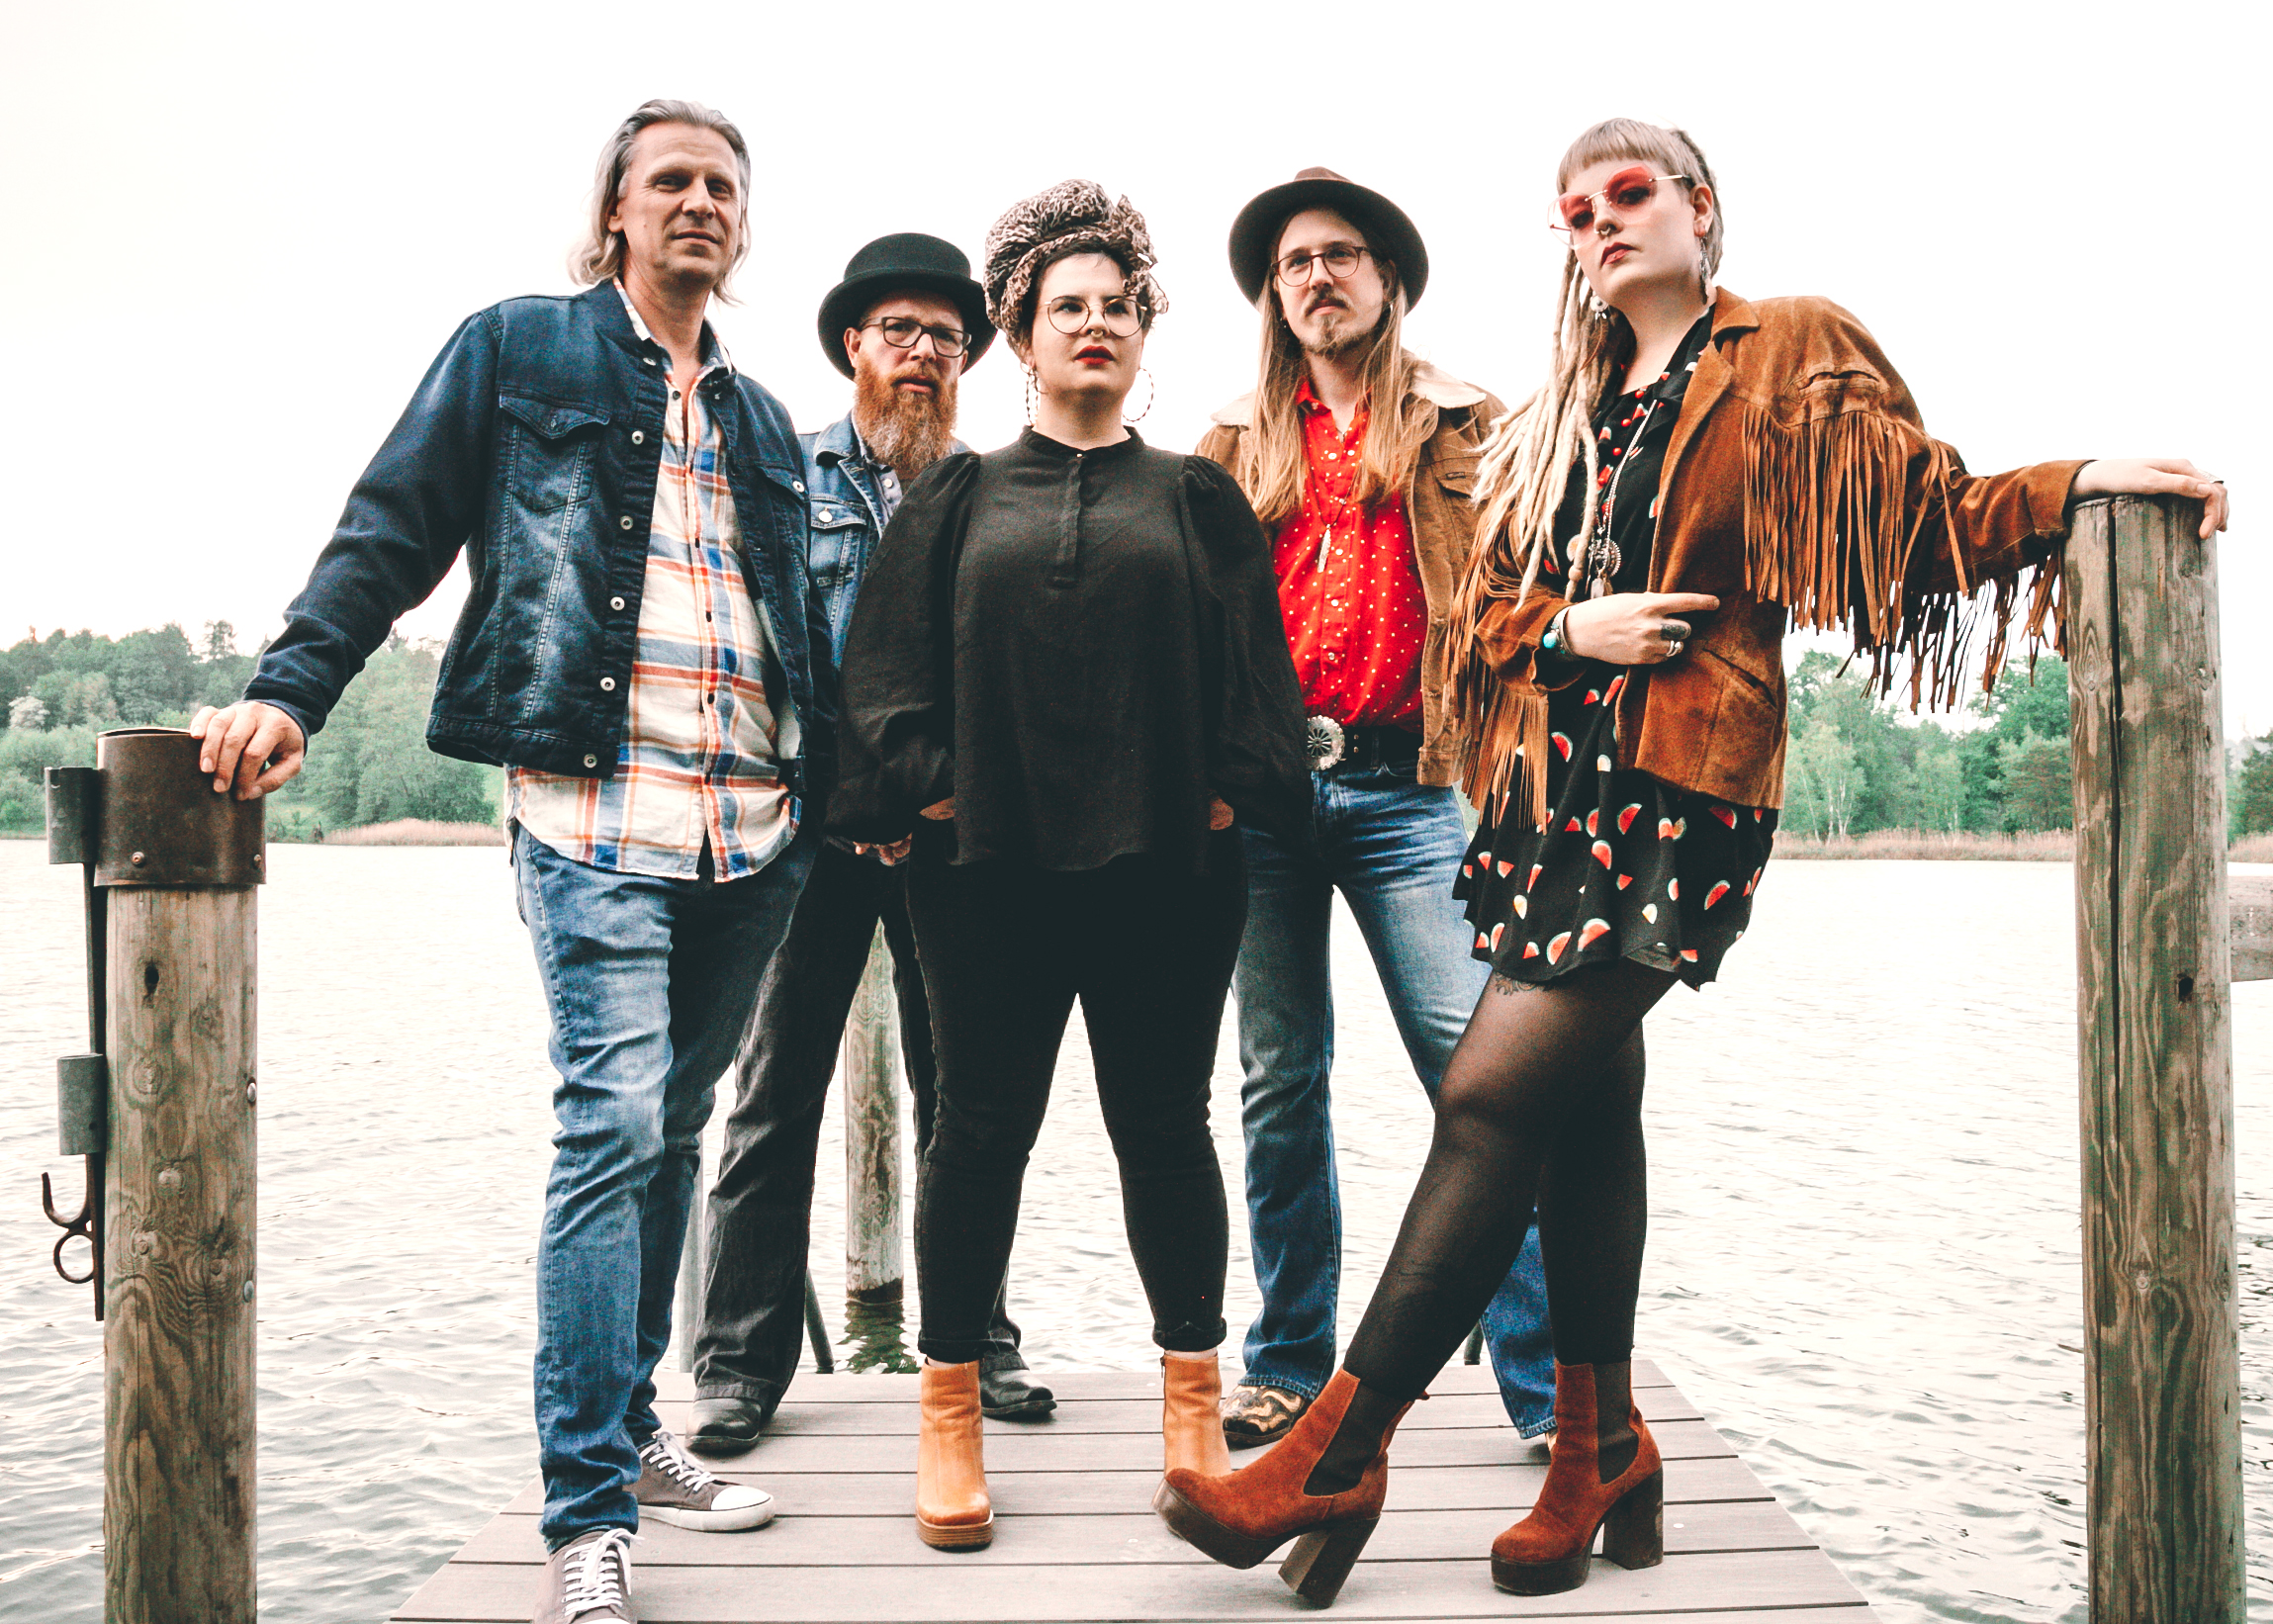 The Band - Jenna Aerne - vocals, electric guitarSandro O. Garcia - electric guitar, vocalsLukas Bosshardt - hammond, piano, synthJürg Hurter - bassNora Lützelschwab - drums, percussion